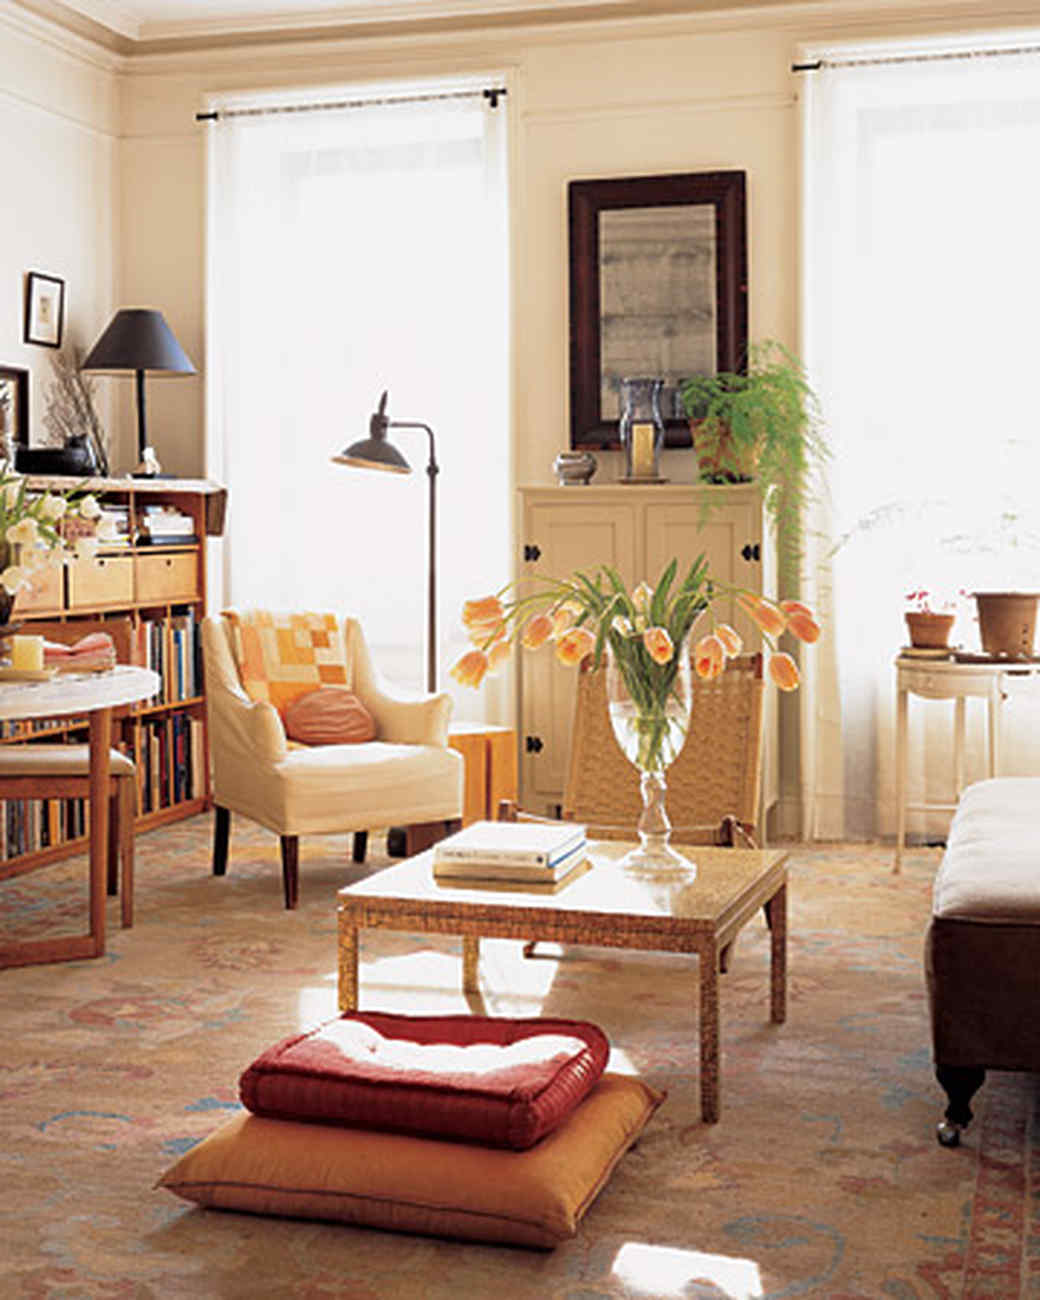 martha stewart living room. The Living Room Home Tour  Brooklyn Apartment Martha Stewart